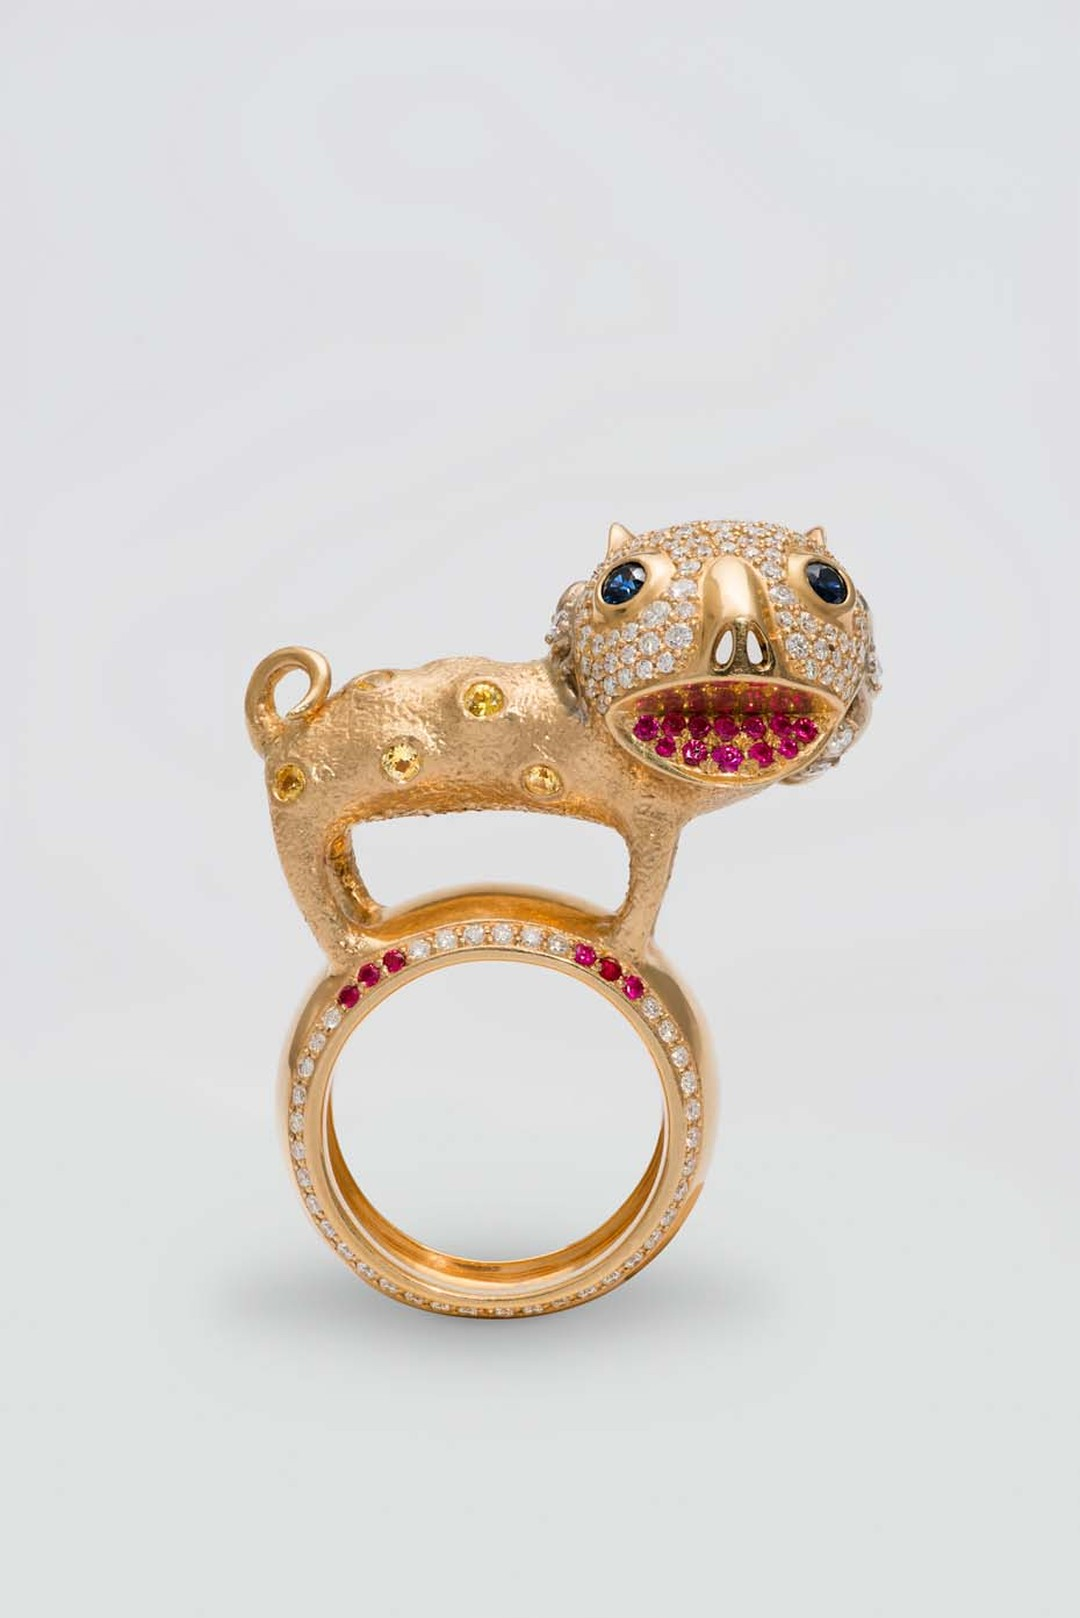 Dashi Namdakov white and yellow gold Lion ring featuring diamonds, rubies and sapphires.